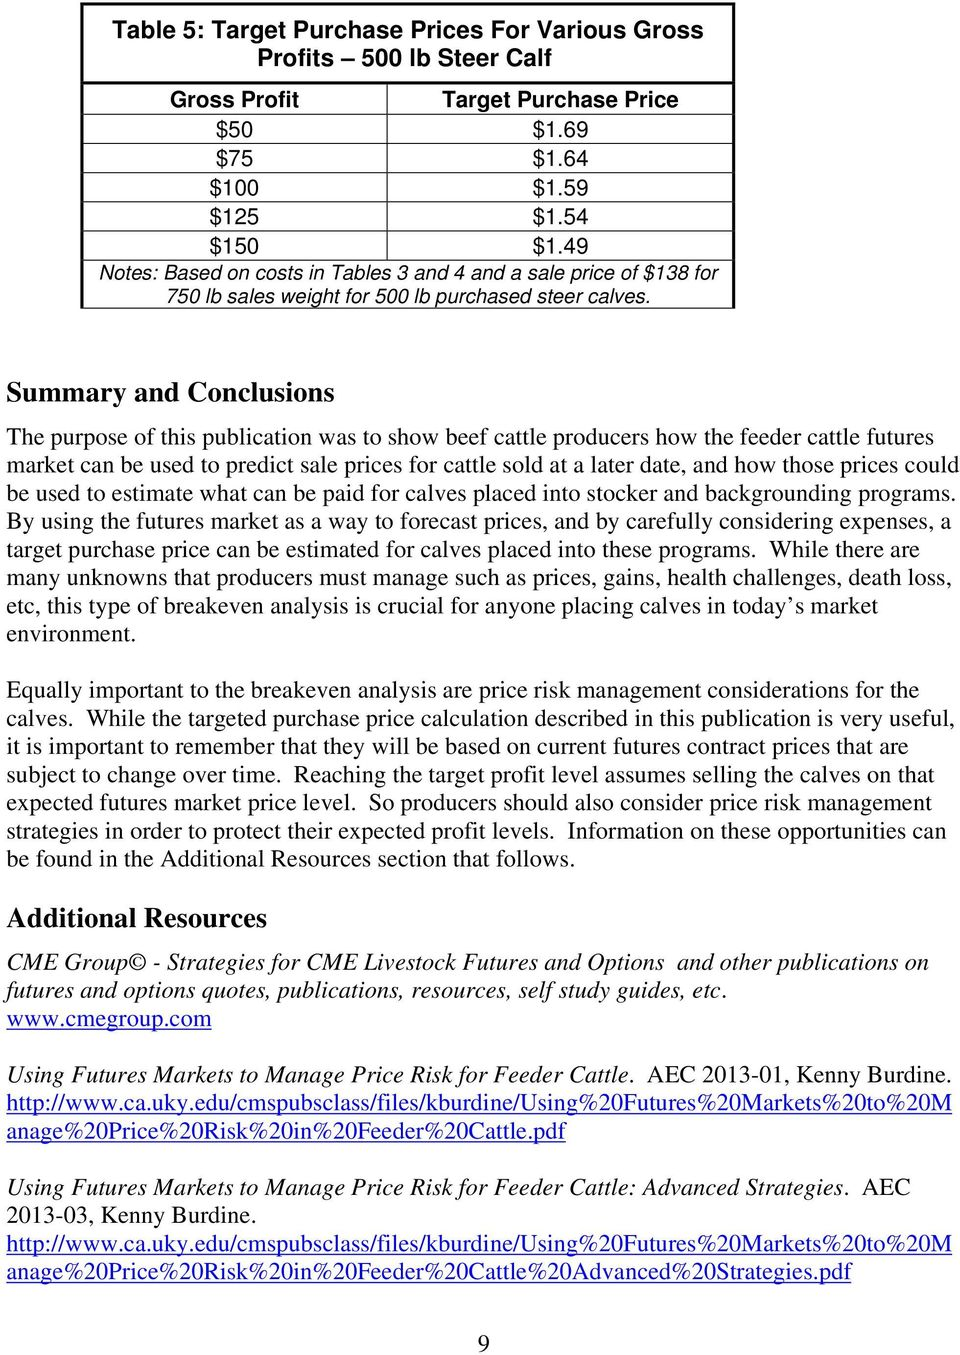 Summary And Conclusions The Purpose Of This Publication Was To Show Beef  Cattle Producers How The